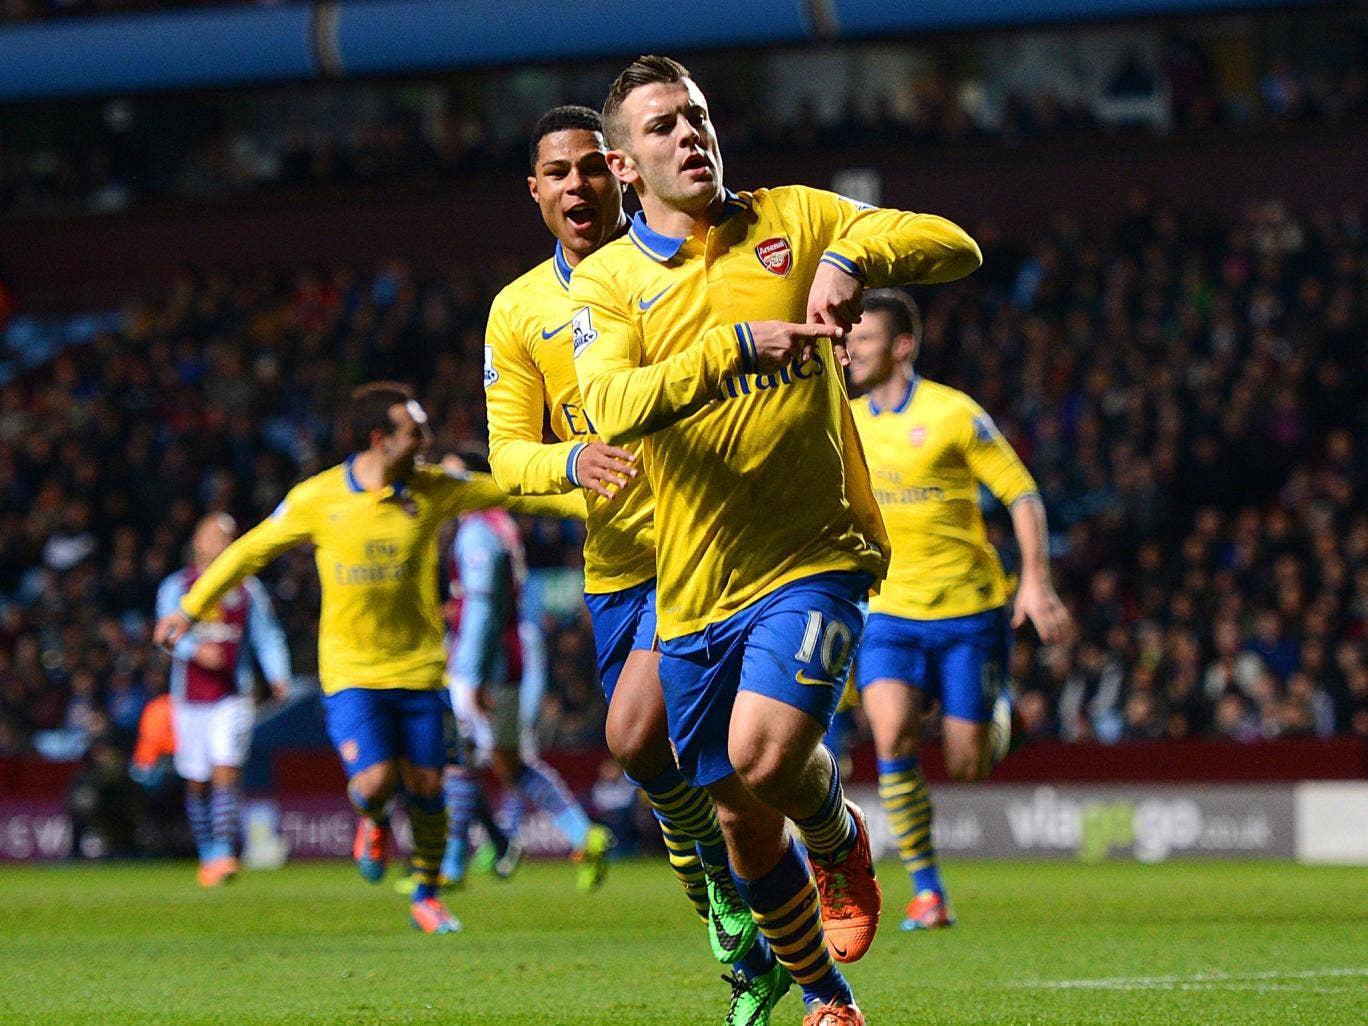 Arsenal's Jack Wilshere celebrates scoring the opening goal in the Gunners' 2-1 Premier League victory over Aston Villa